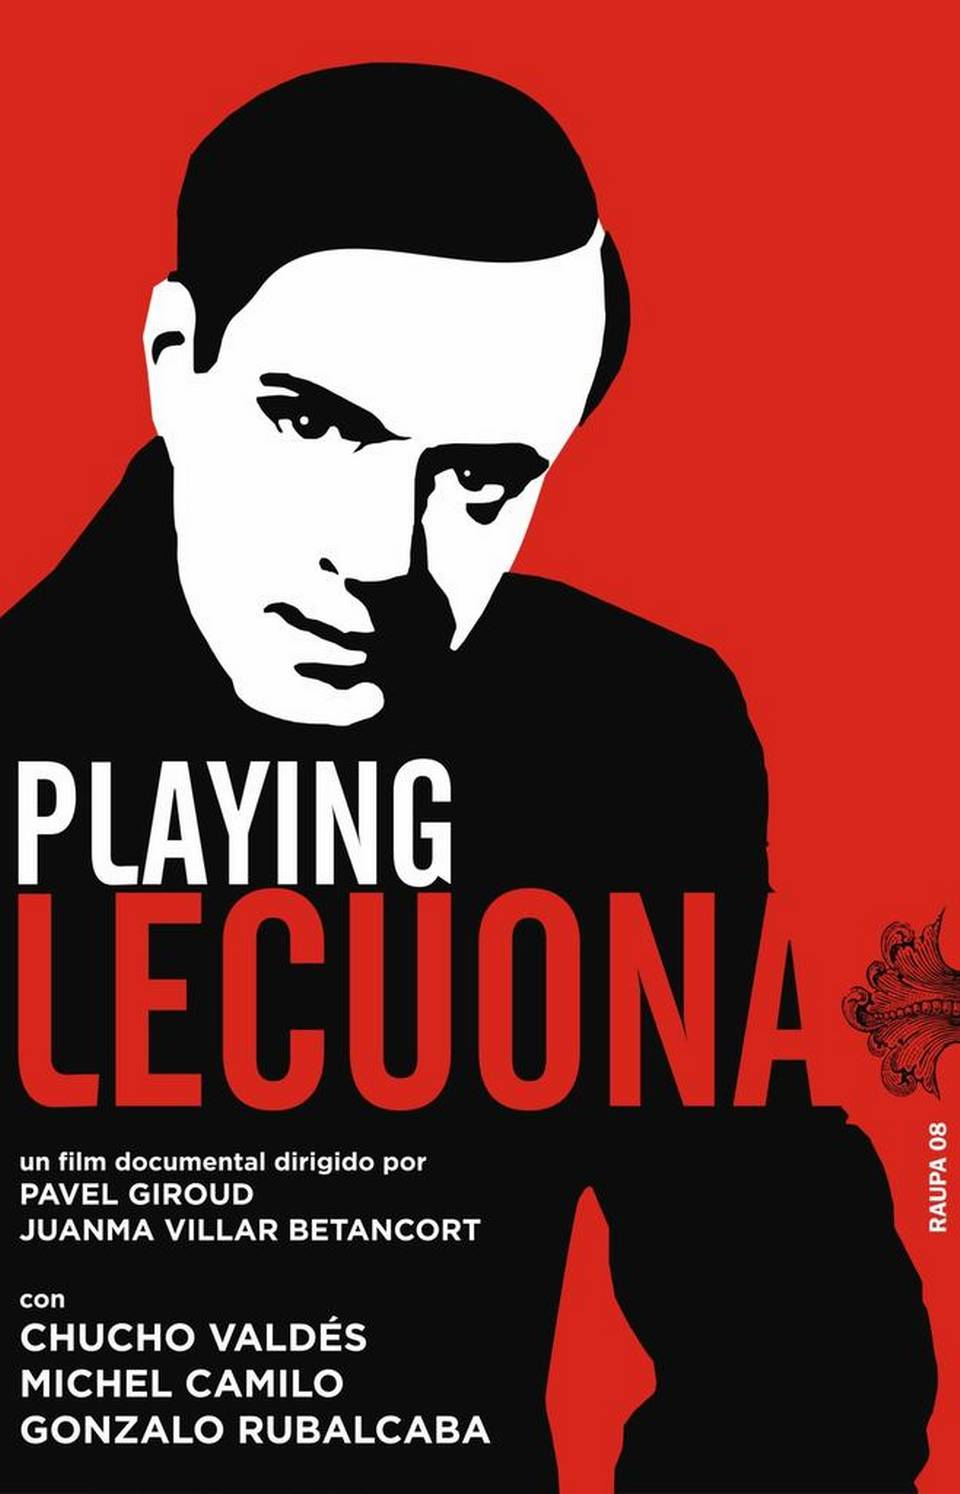 PLAYING-LECUONA-CARTEL